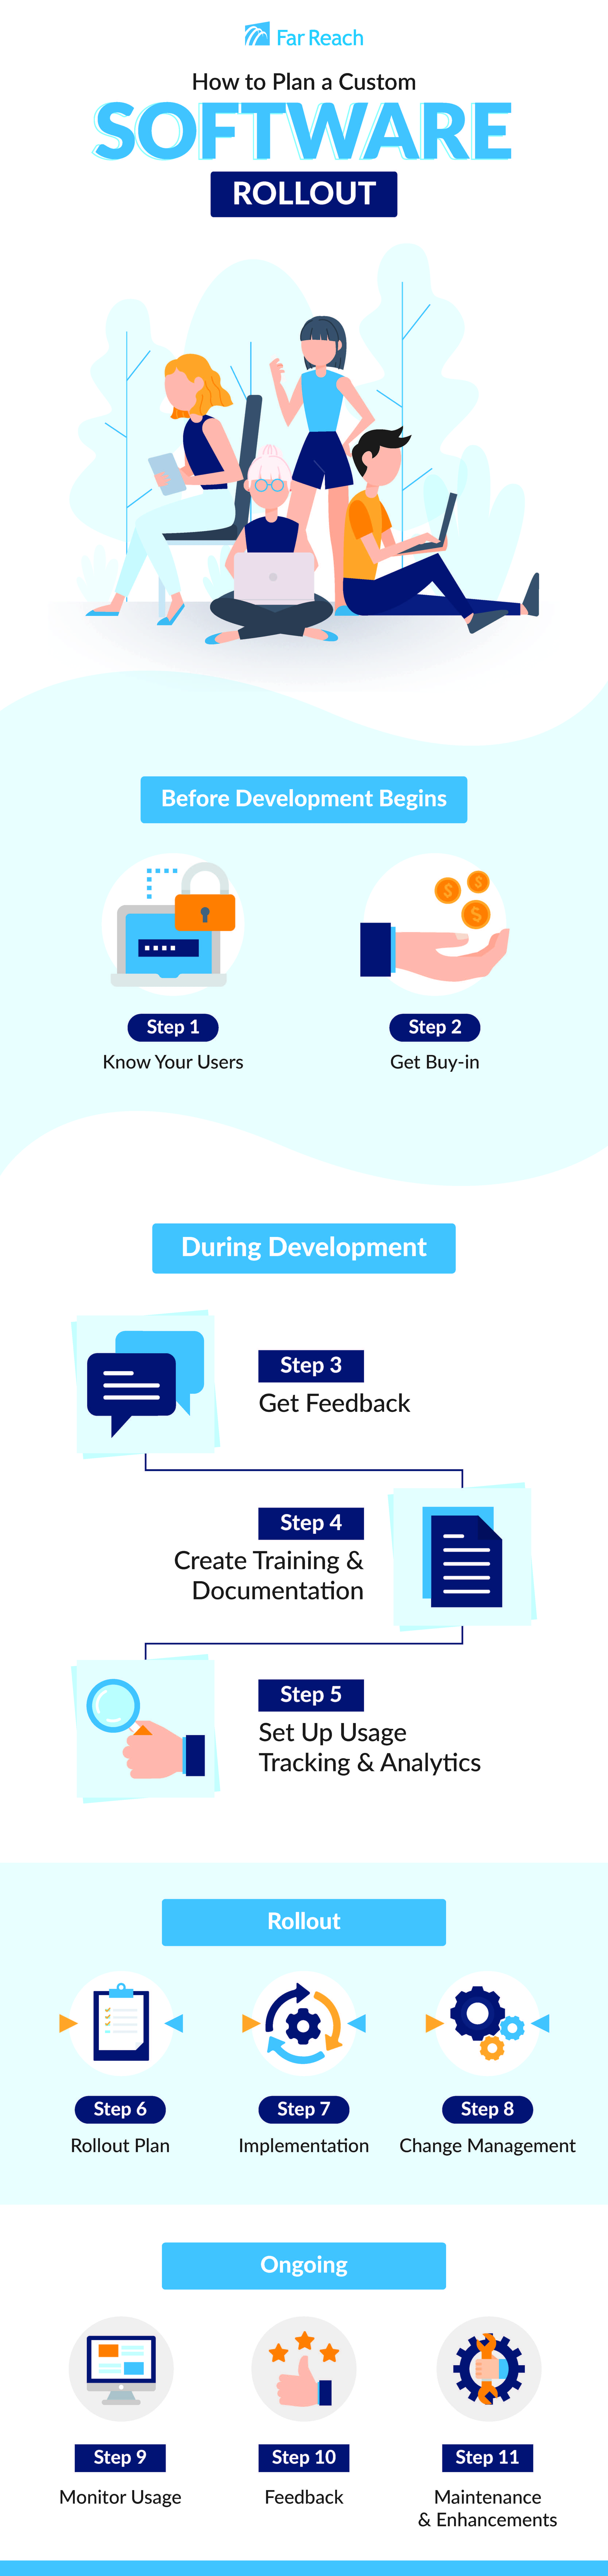 software rollout infographic